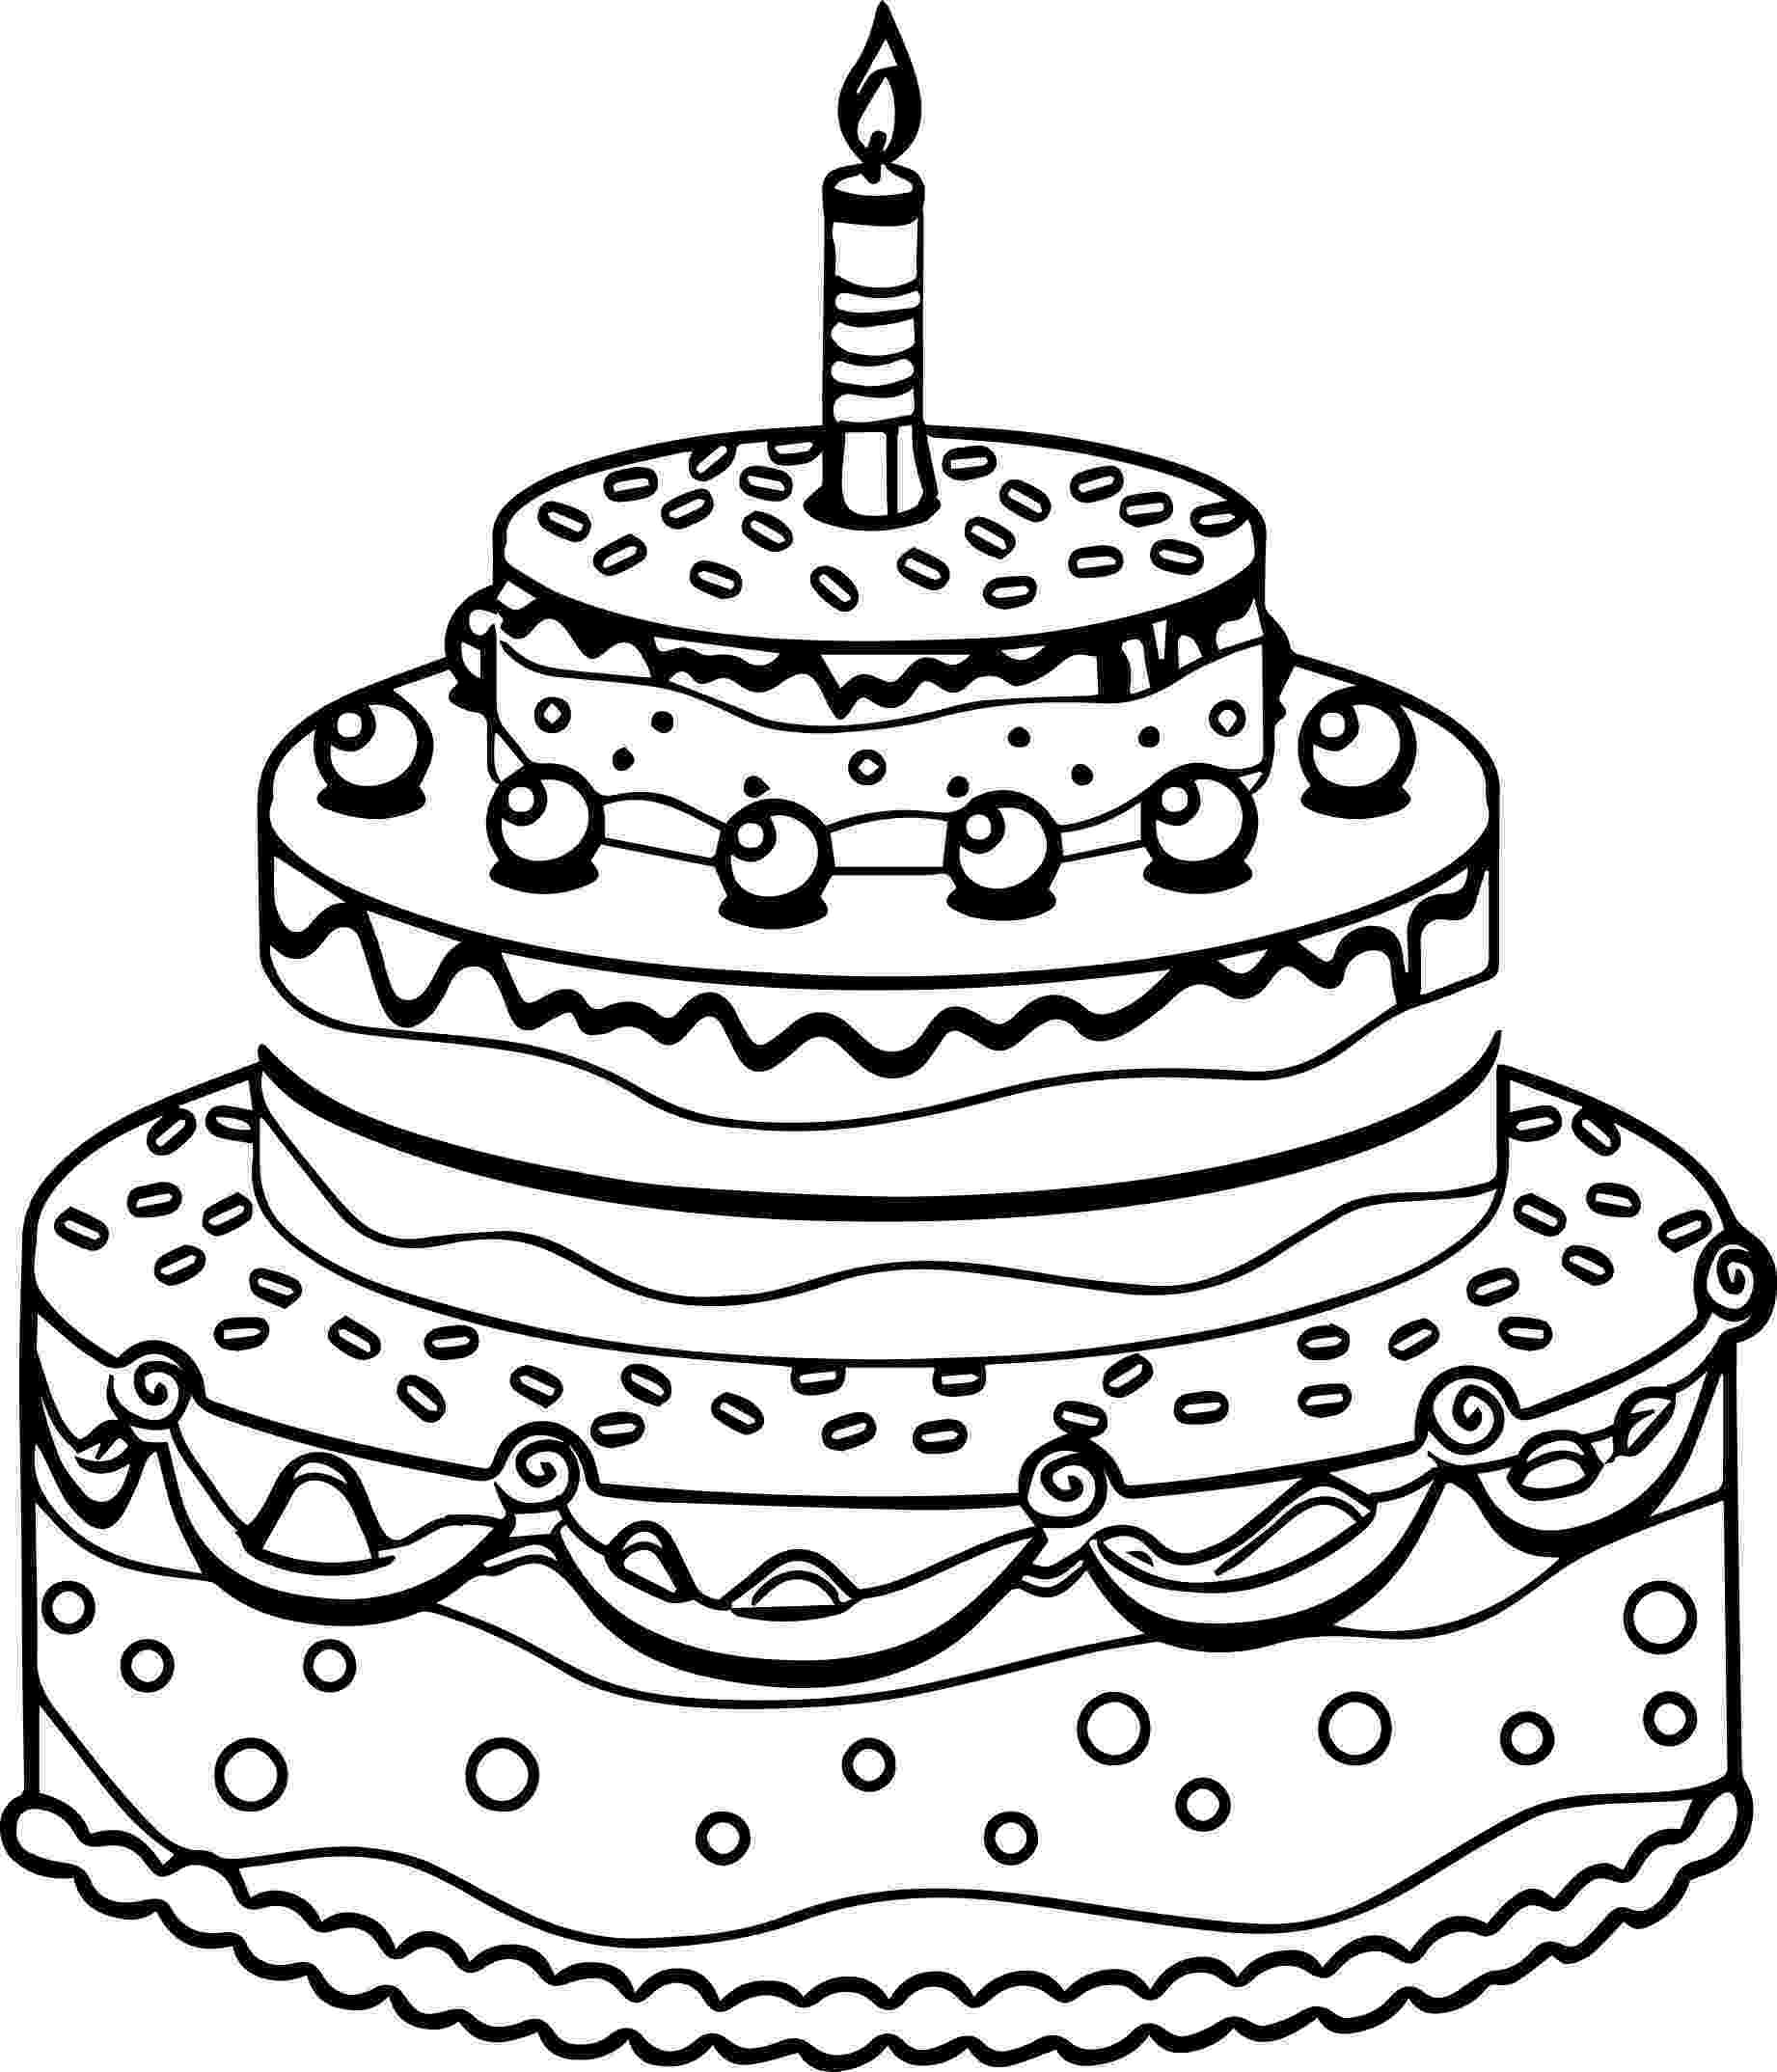 cake coloring pages to print birthday cake coloring pages getcoloringpagescom print cake to coloring pages